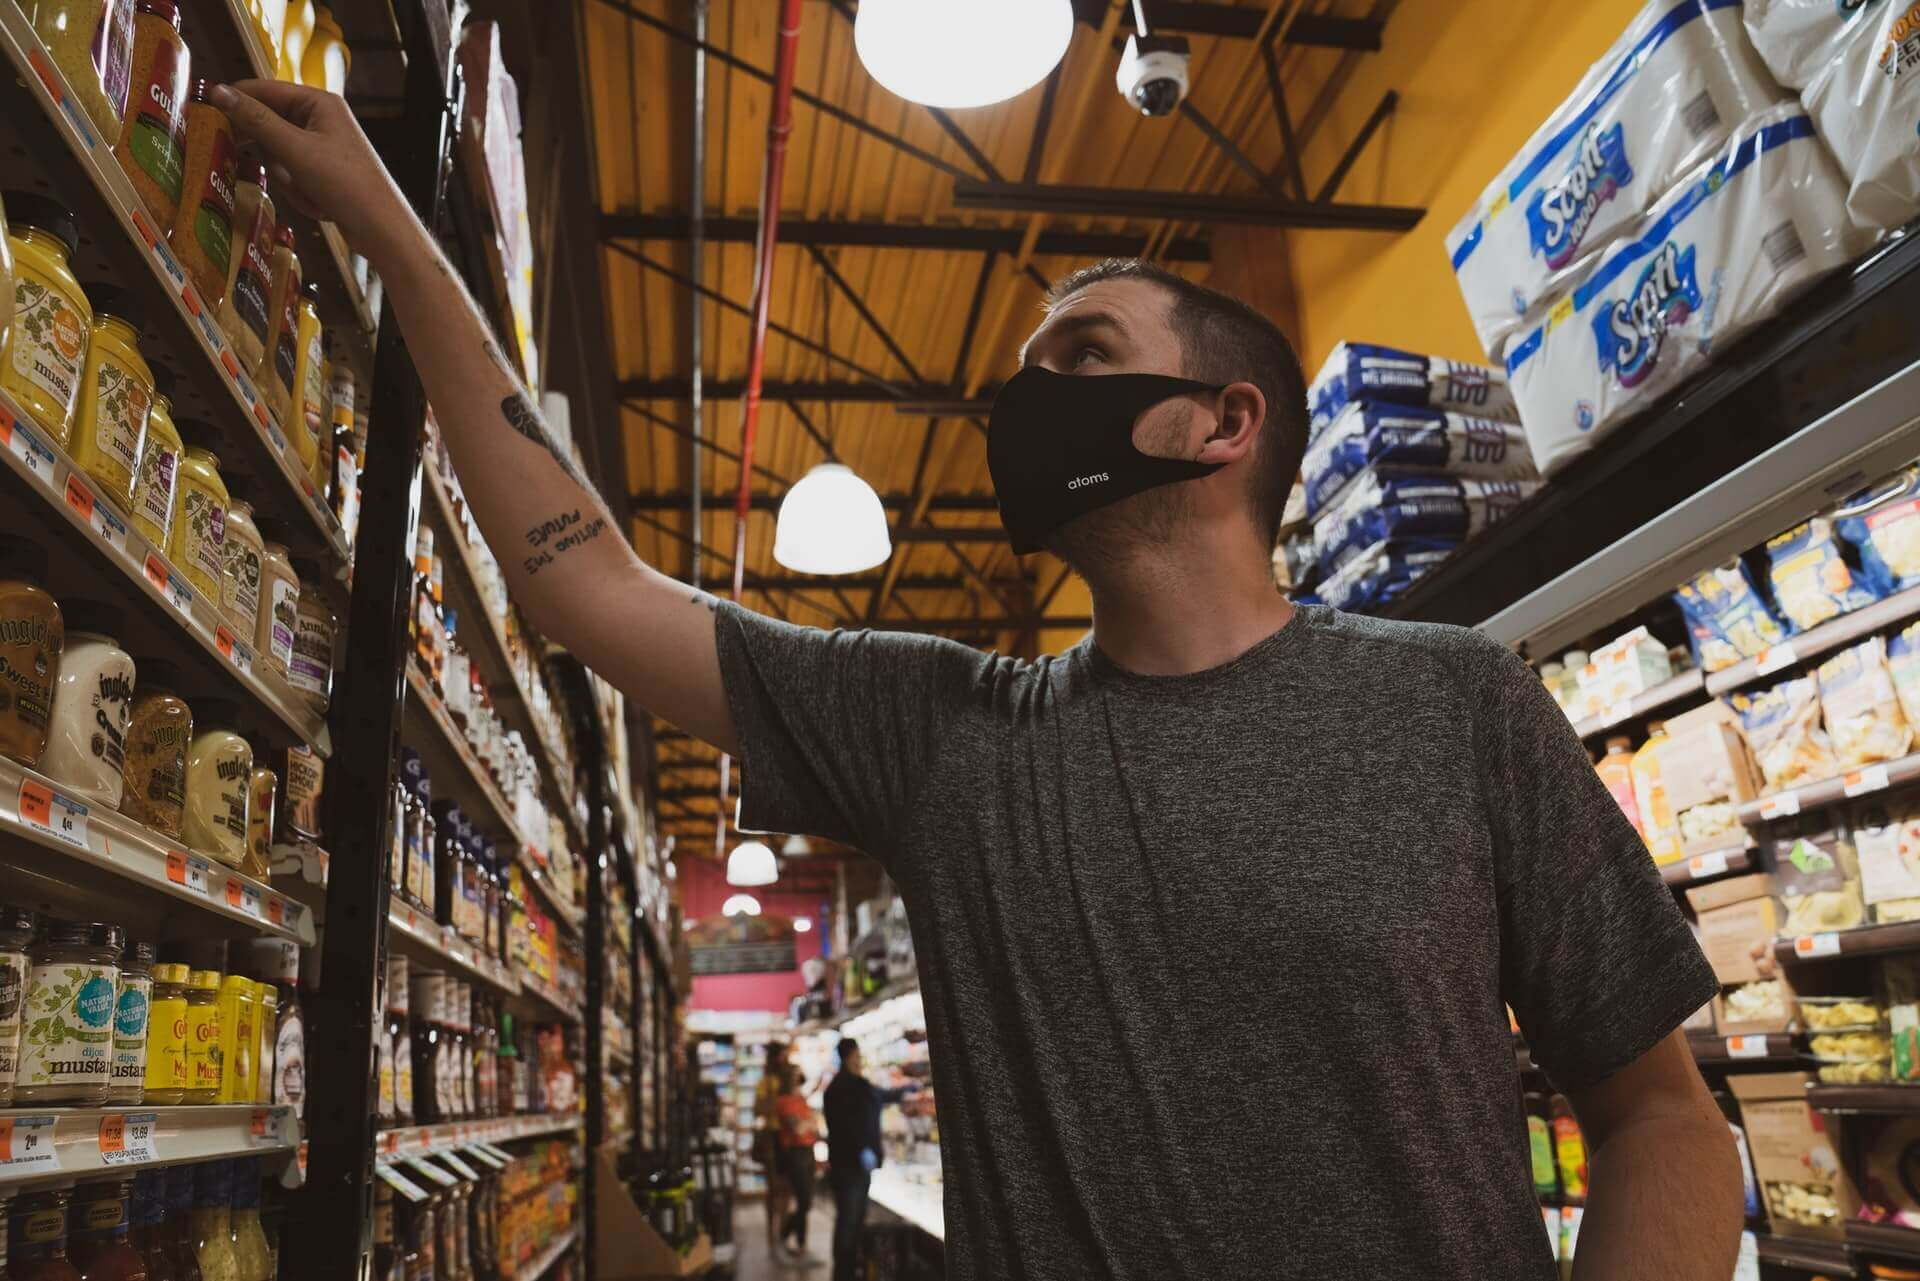 A man with a face mask shopping for groceries in a supermarket aisle